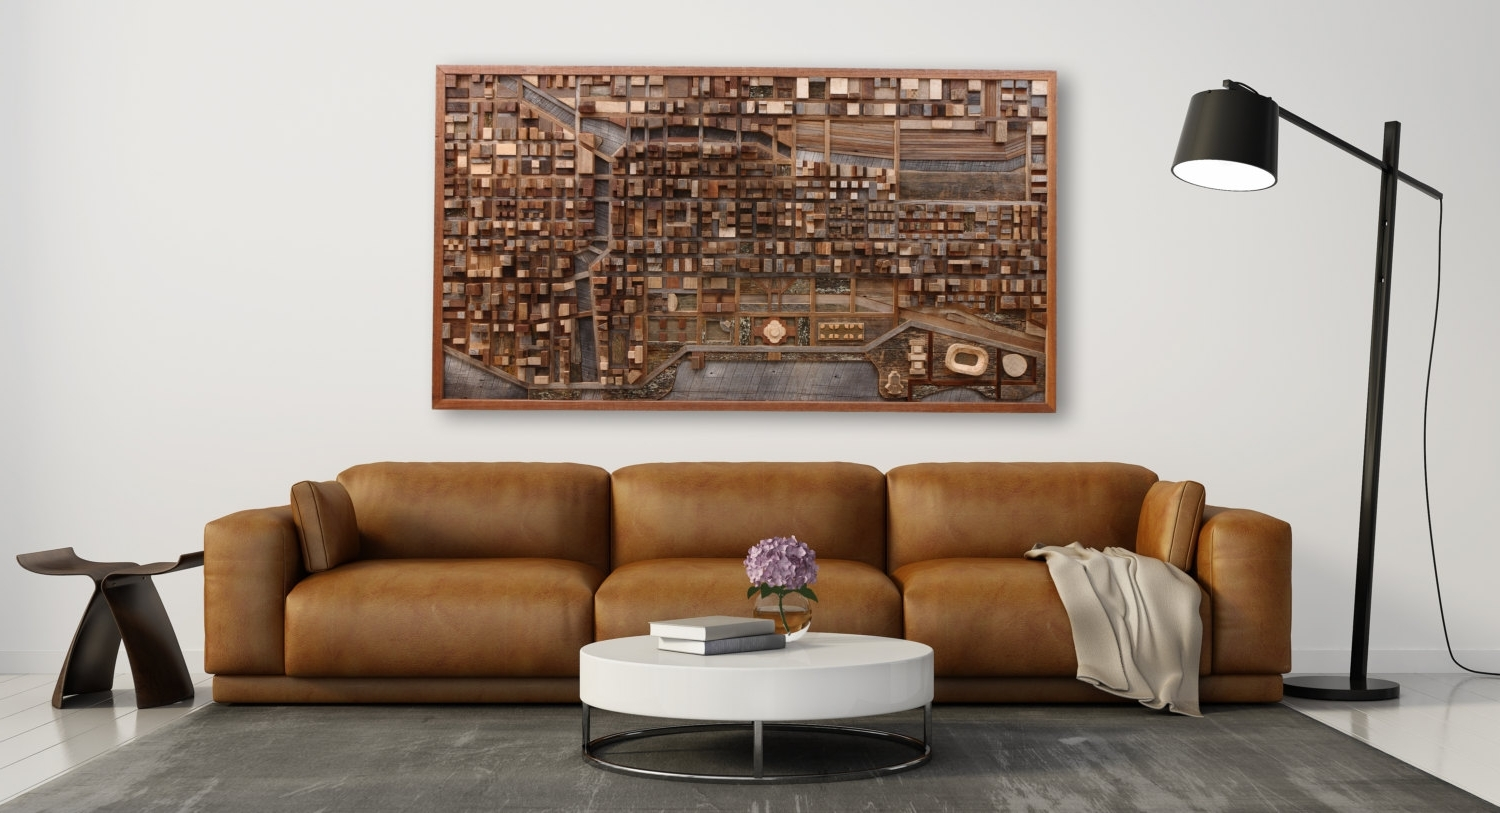 Wall Art Designs: Personalized Wood Wall Art Reclaimed Wood Wall For Popular Industrial Wall Art (View 15 of 15)